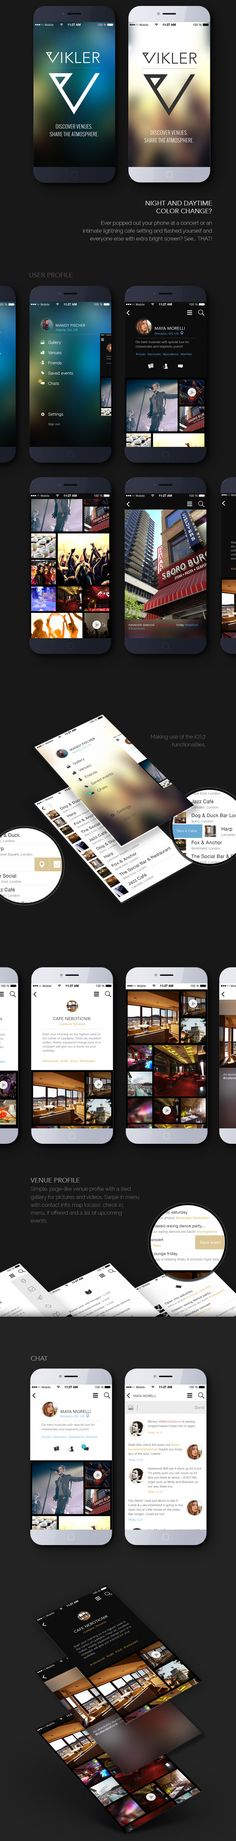 Vikler #mobile application design - #ui